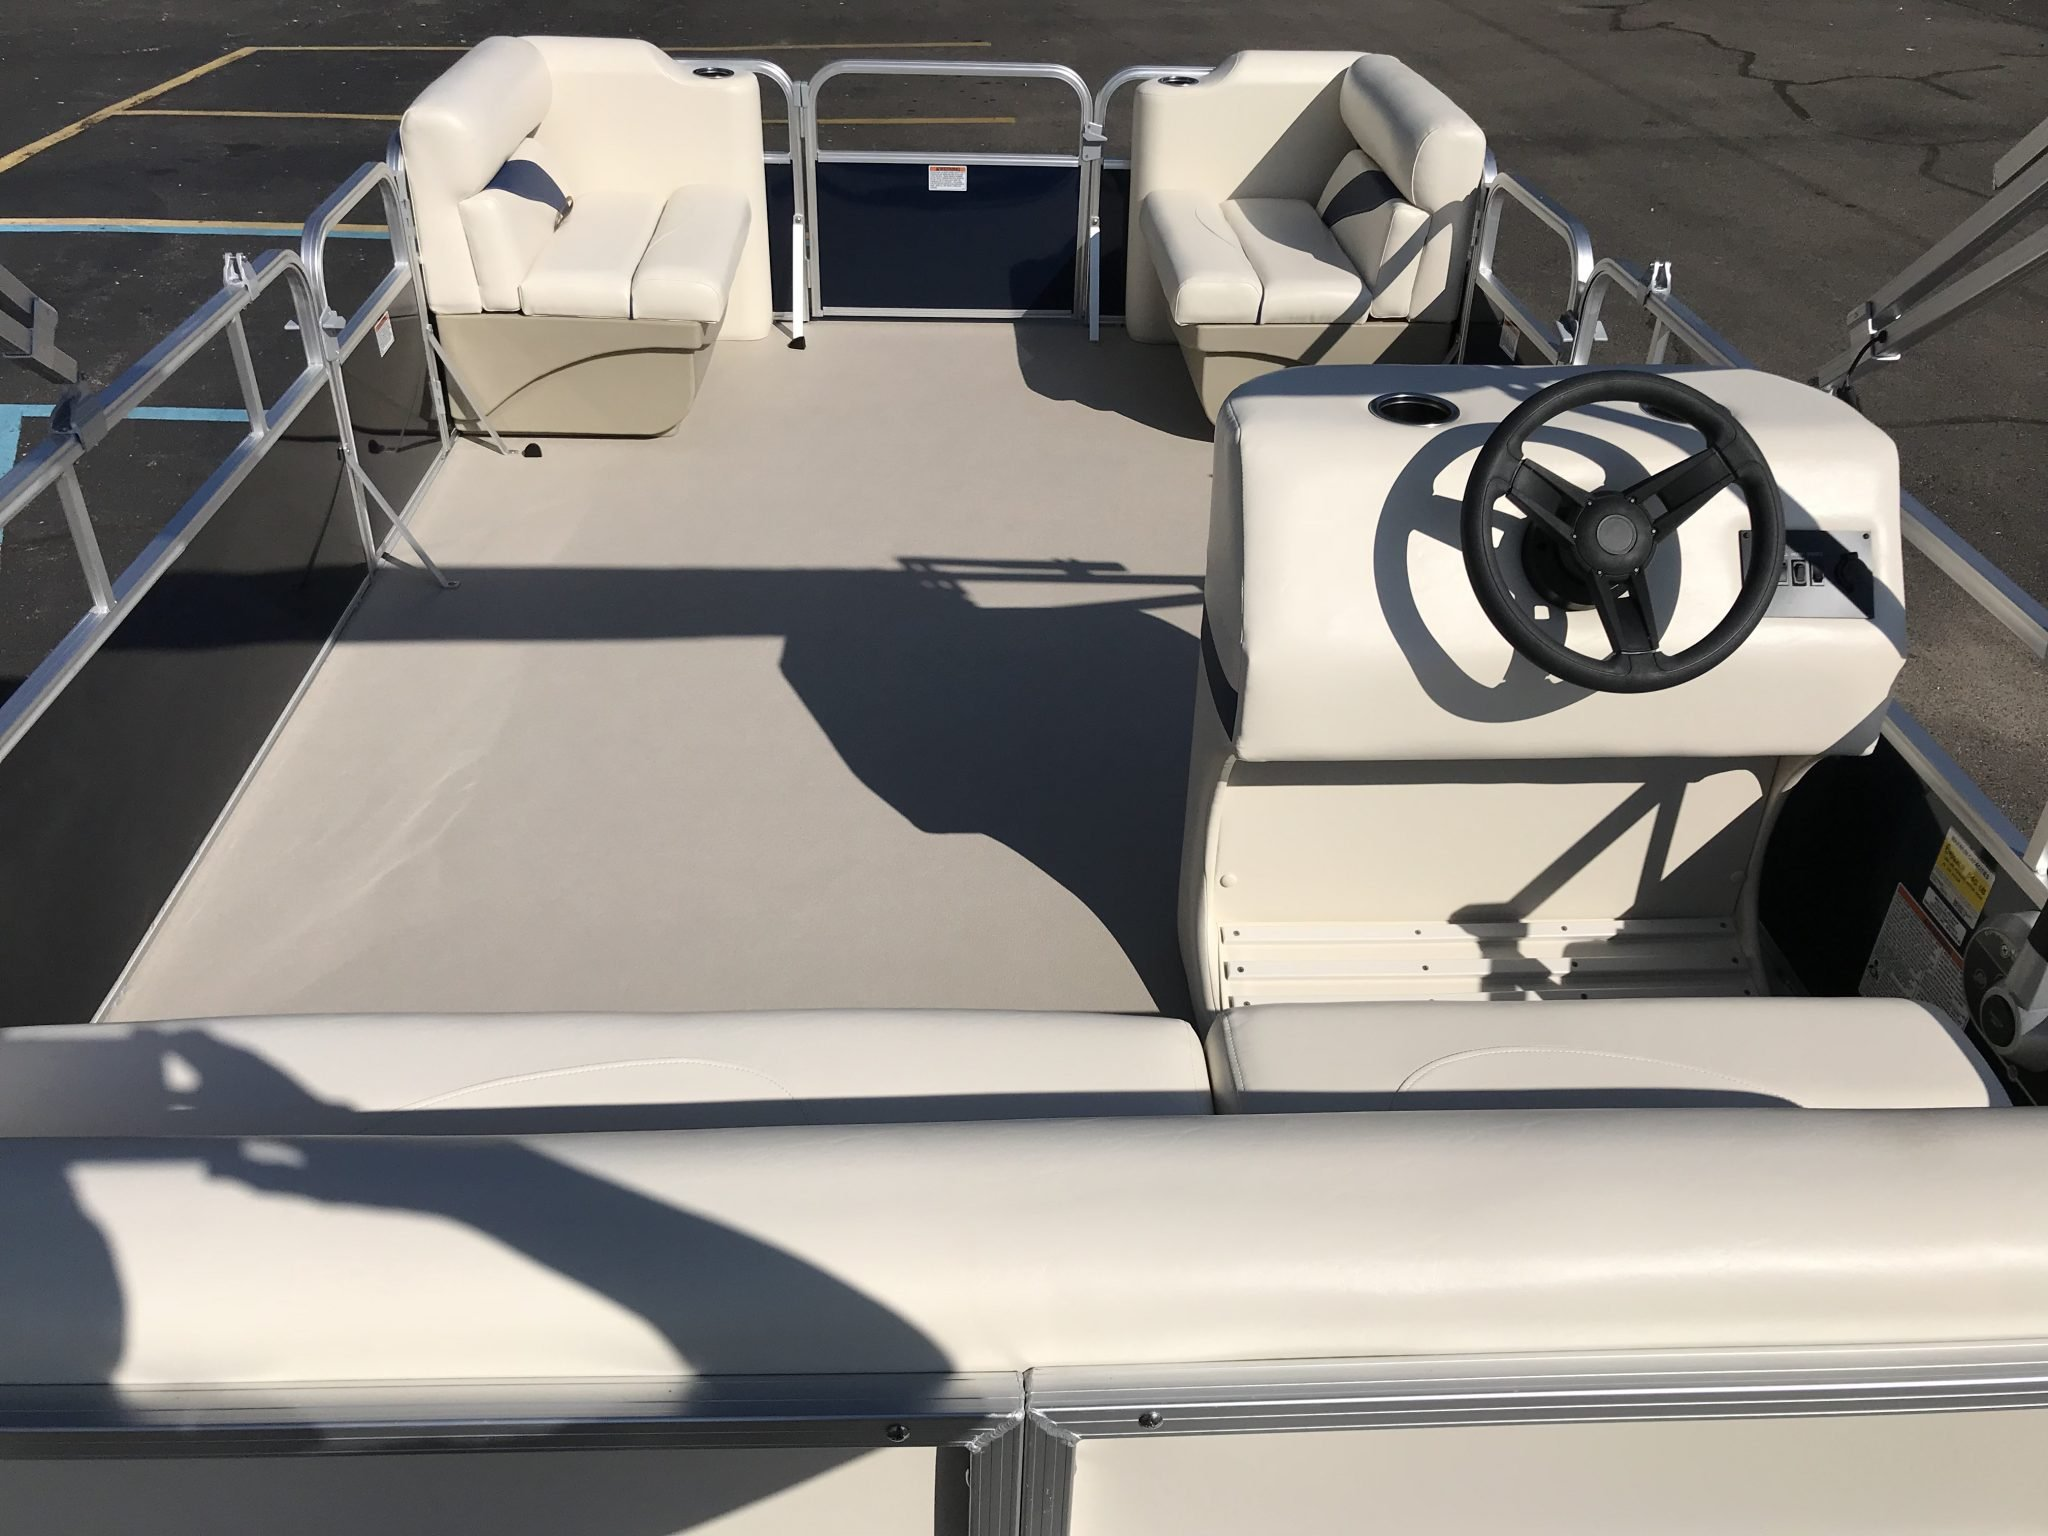 2019 SunChaser 816 Cruise Cockpit Seating Layout